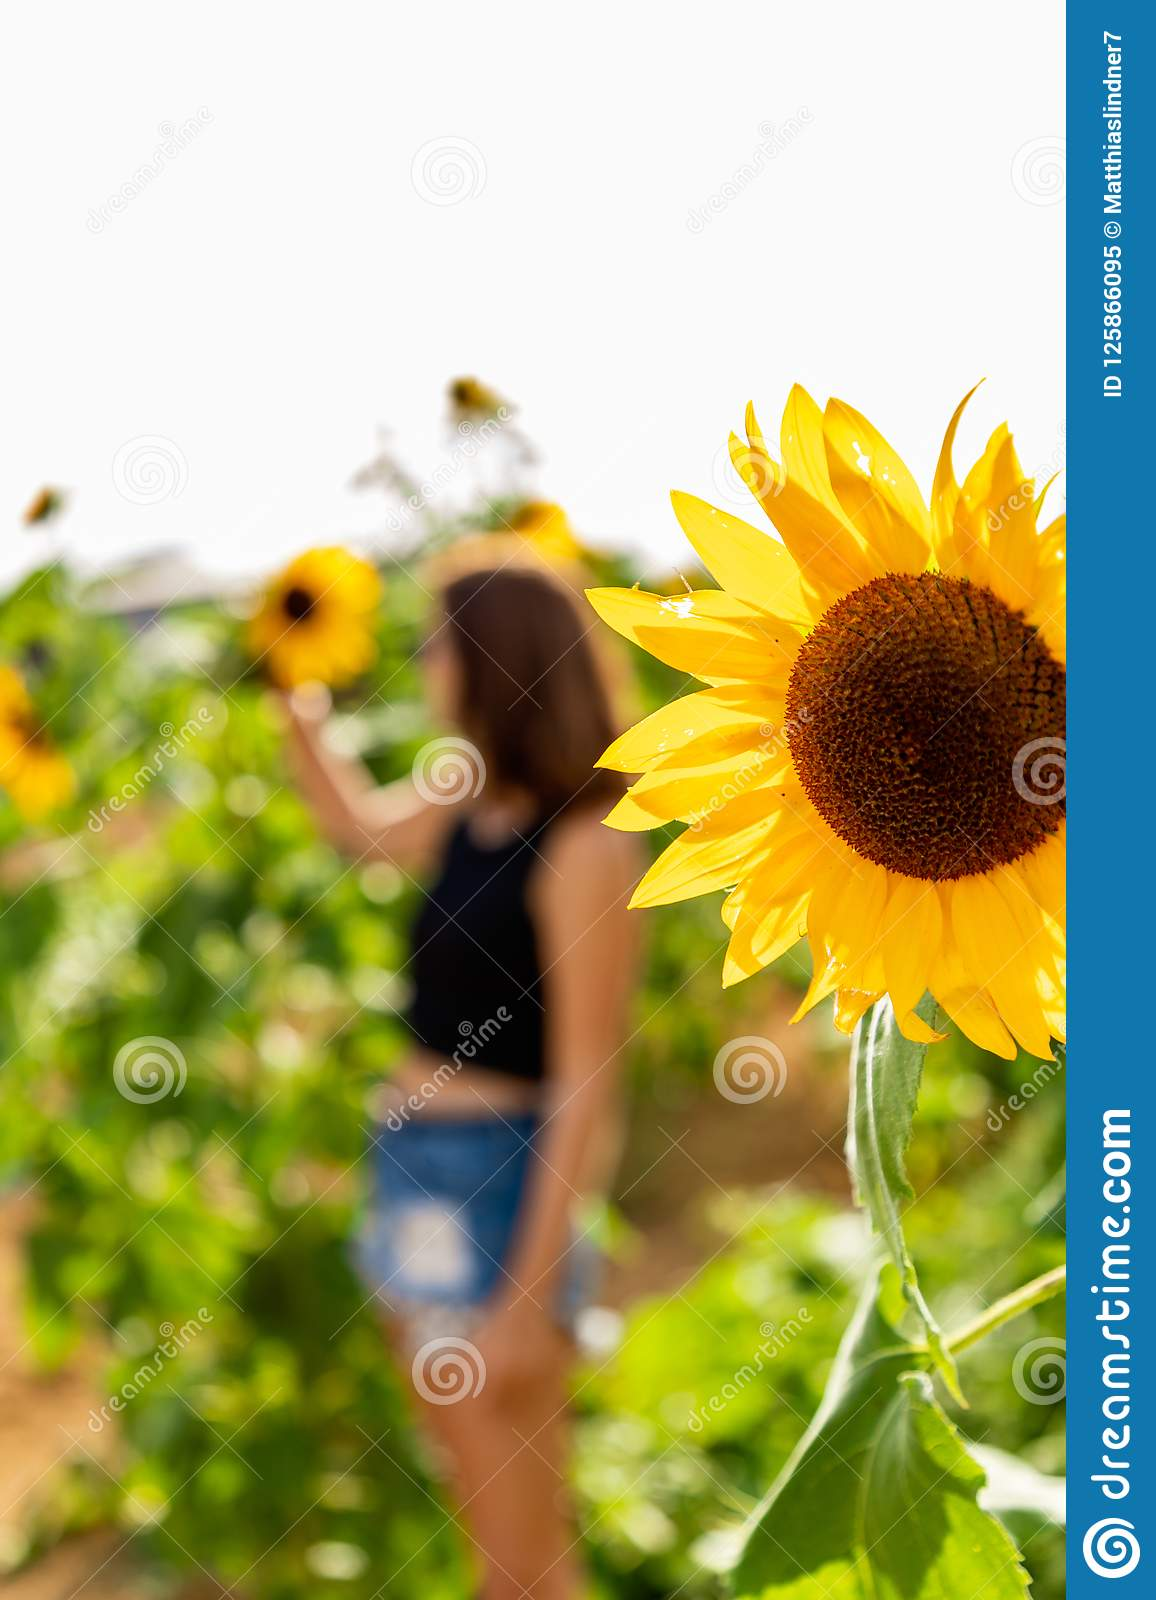 Sunflower in the sunlight with young woman in the background